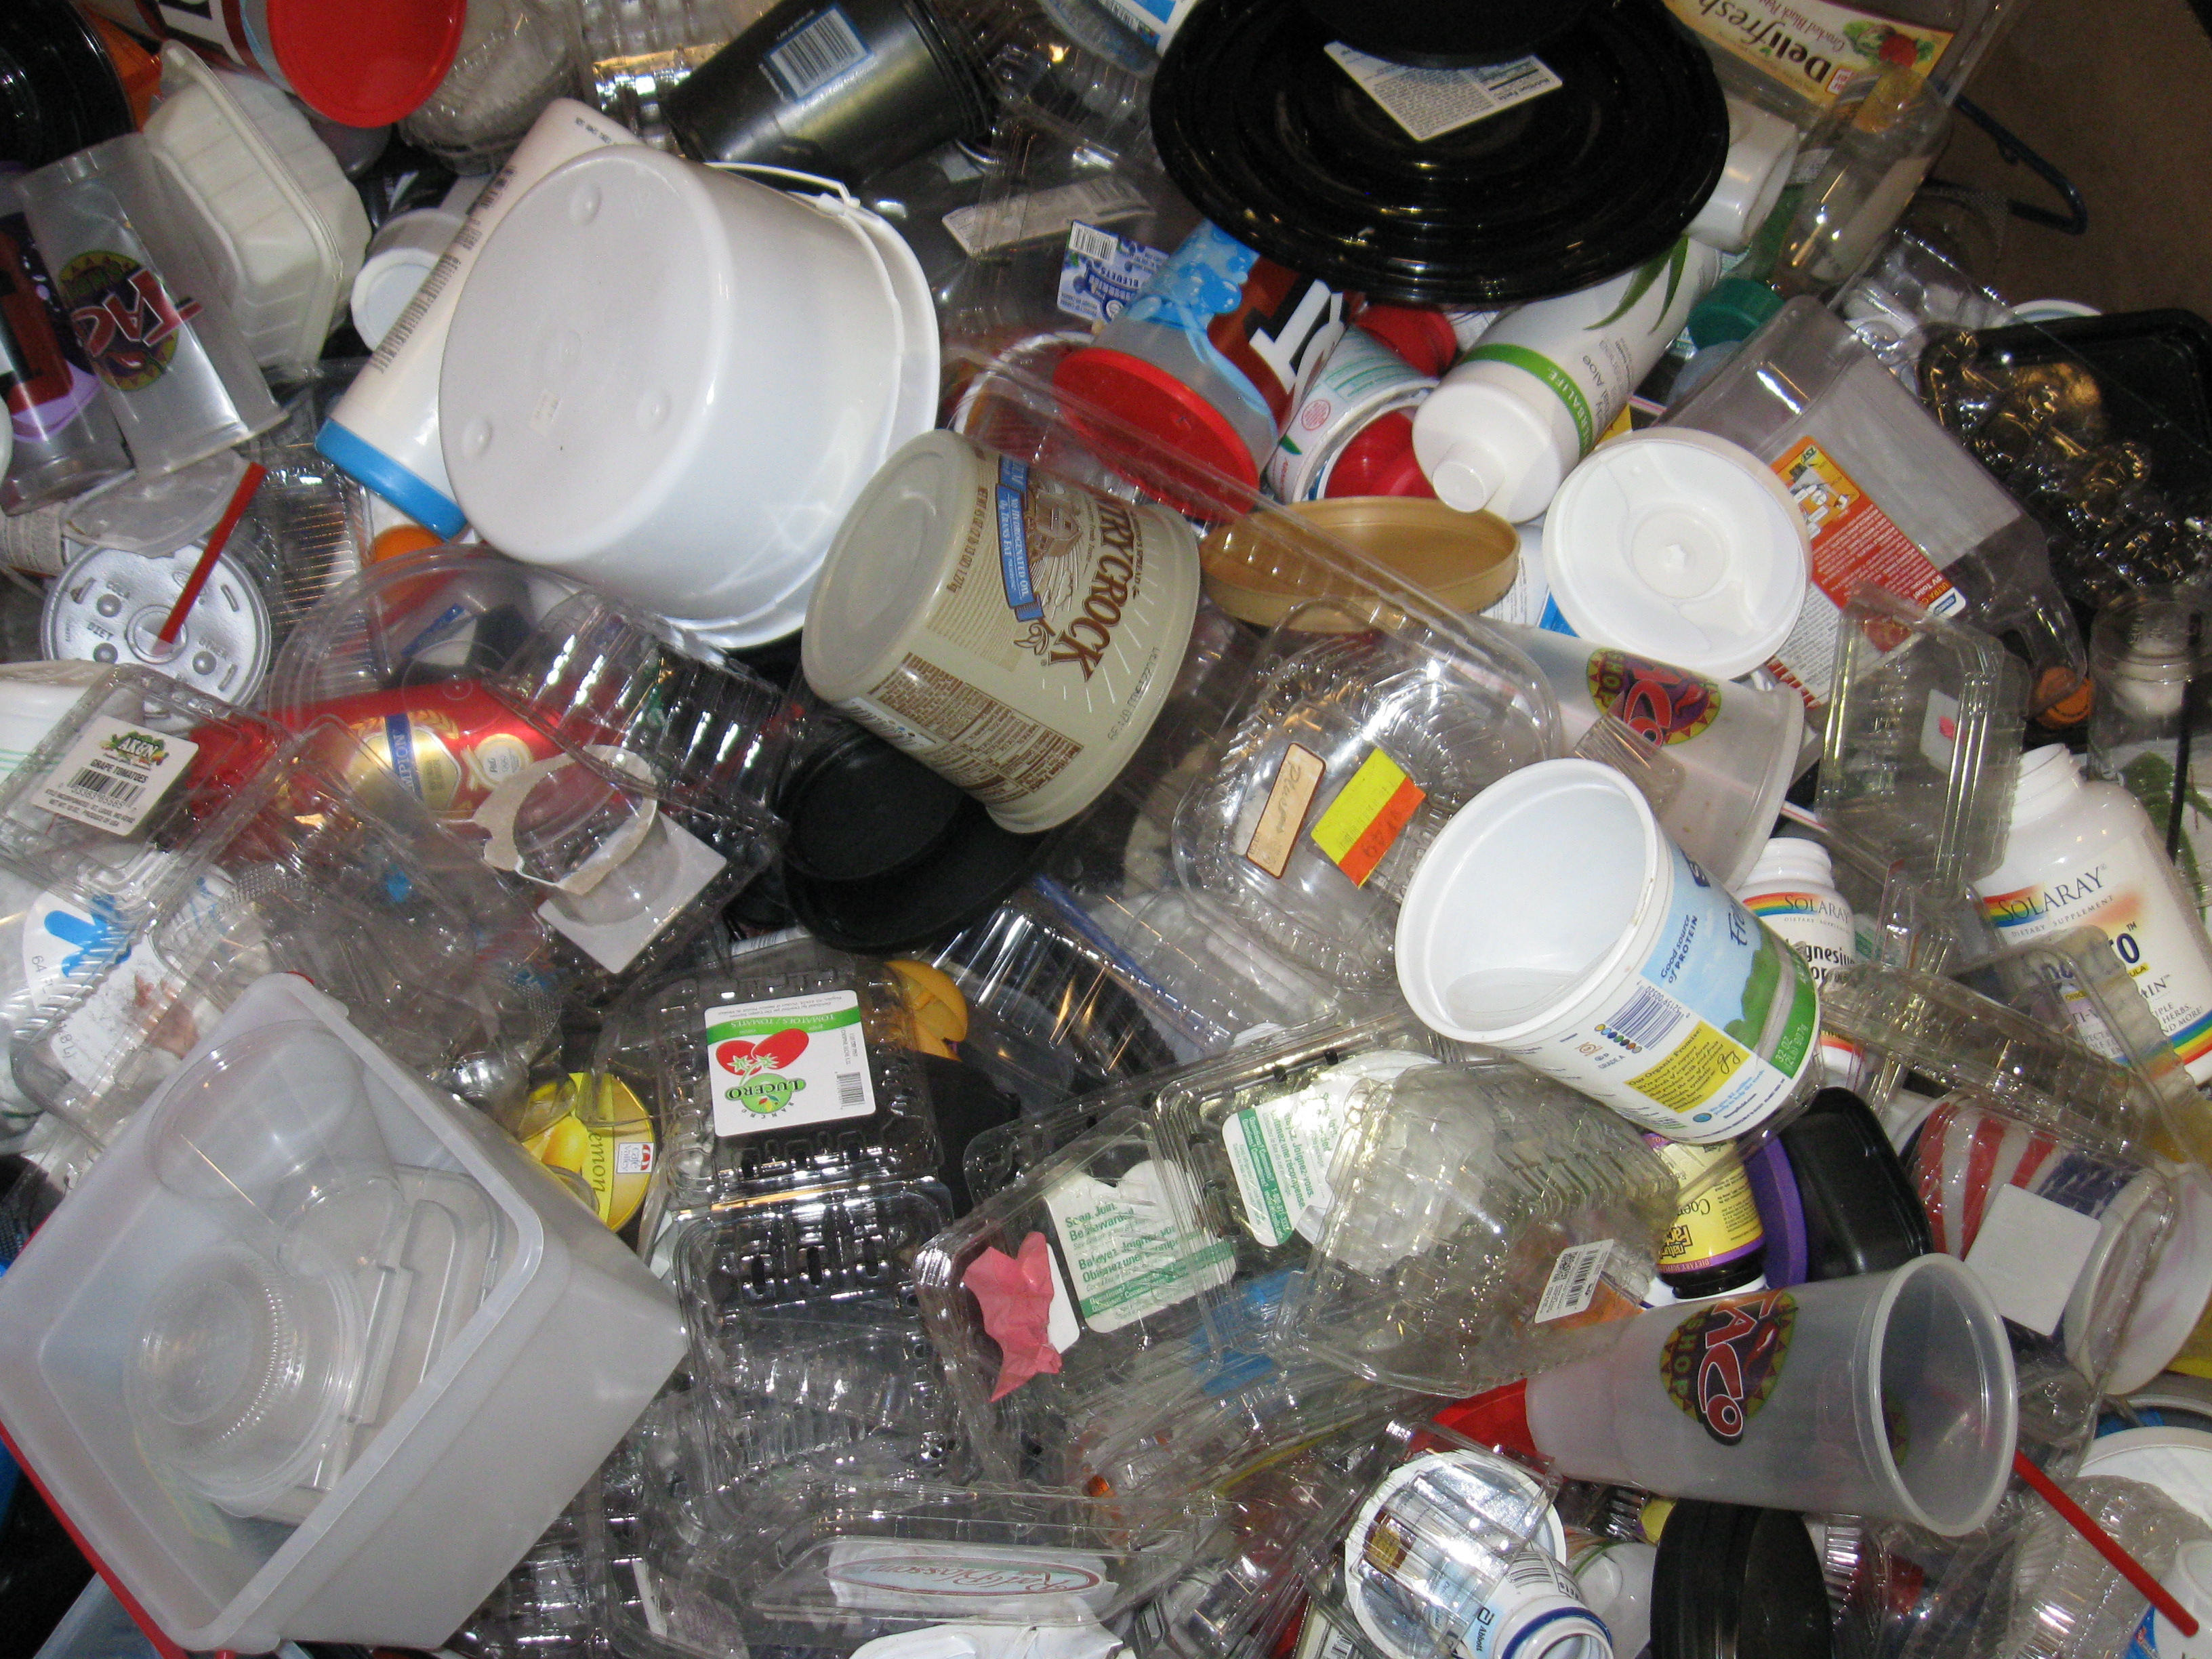 Mixed Plastic – margarine, yogurt, drink cups, food trays (clear&black), medicine containers, dark bottles.  NO plastic bags, Styrofoam or styrene (foam clamshell carryout containers, meat trays, etc.) All metal MUST be removed!